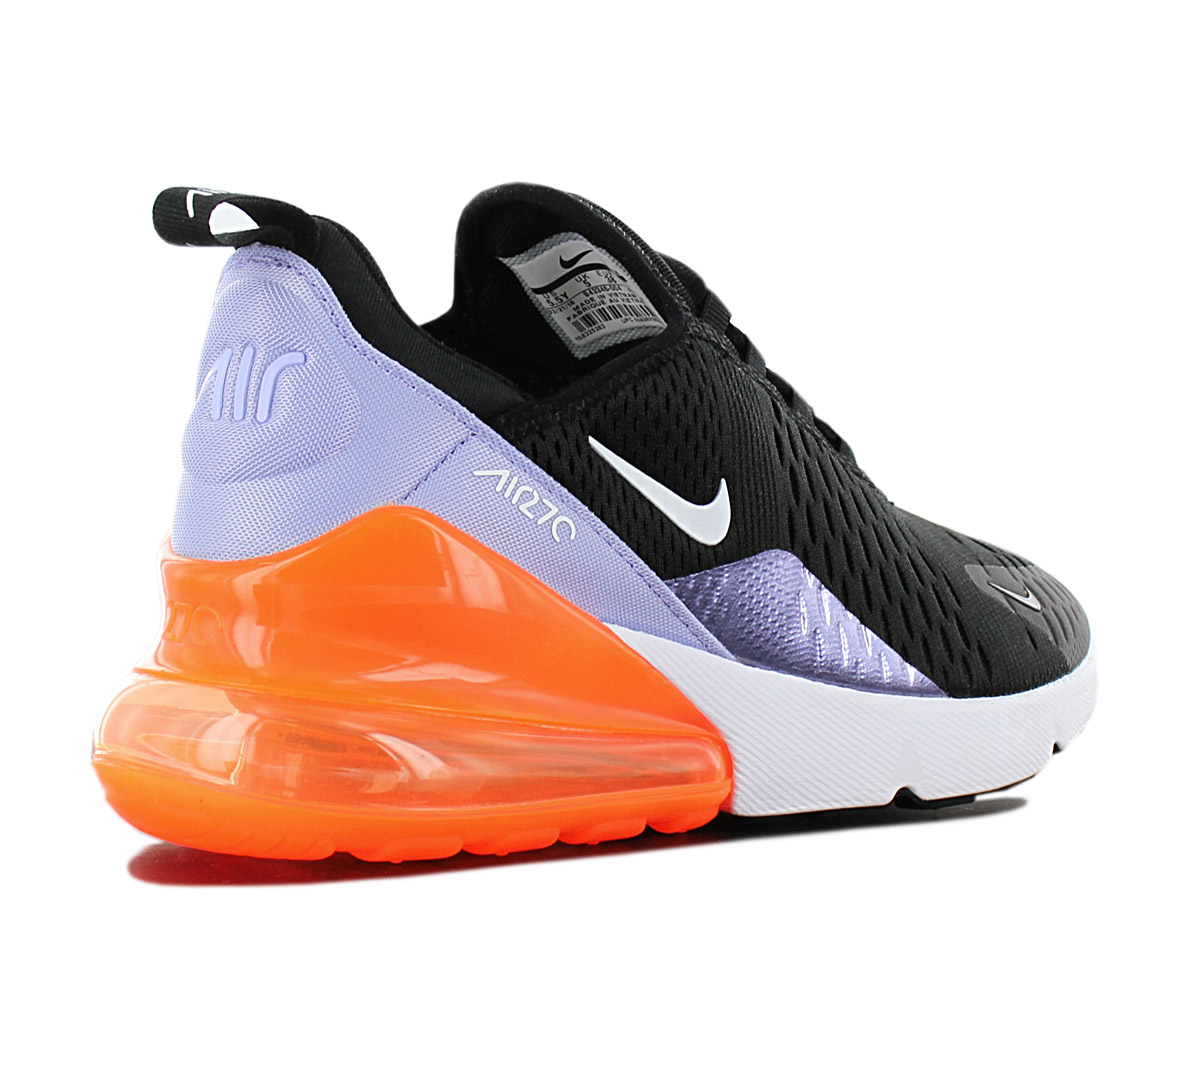 Details about Nike air max 270 Sneaaker Women's Shoes 943346 004 Black Leisure Shoe New